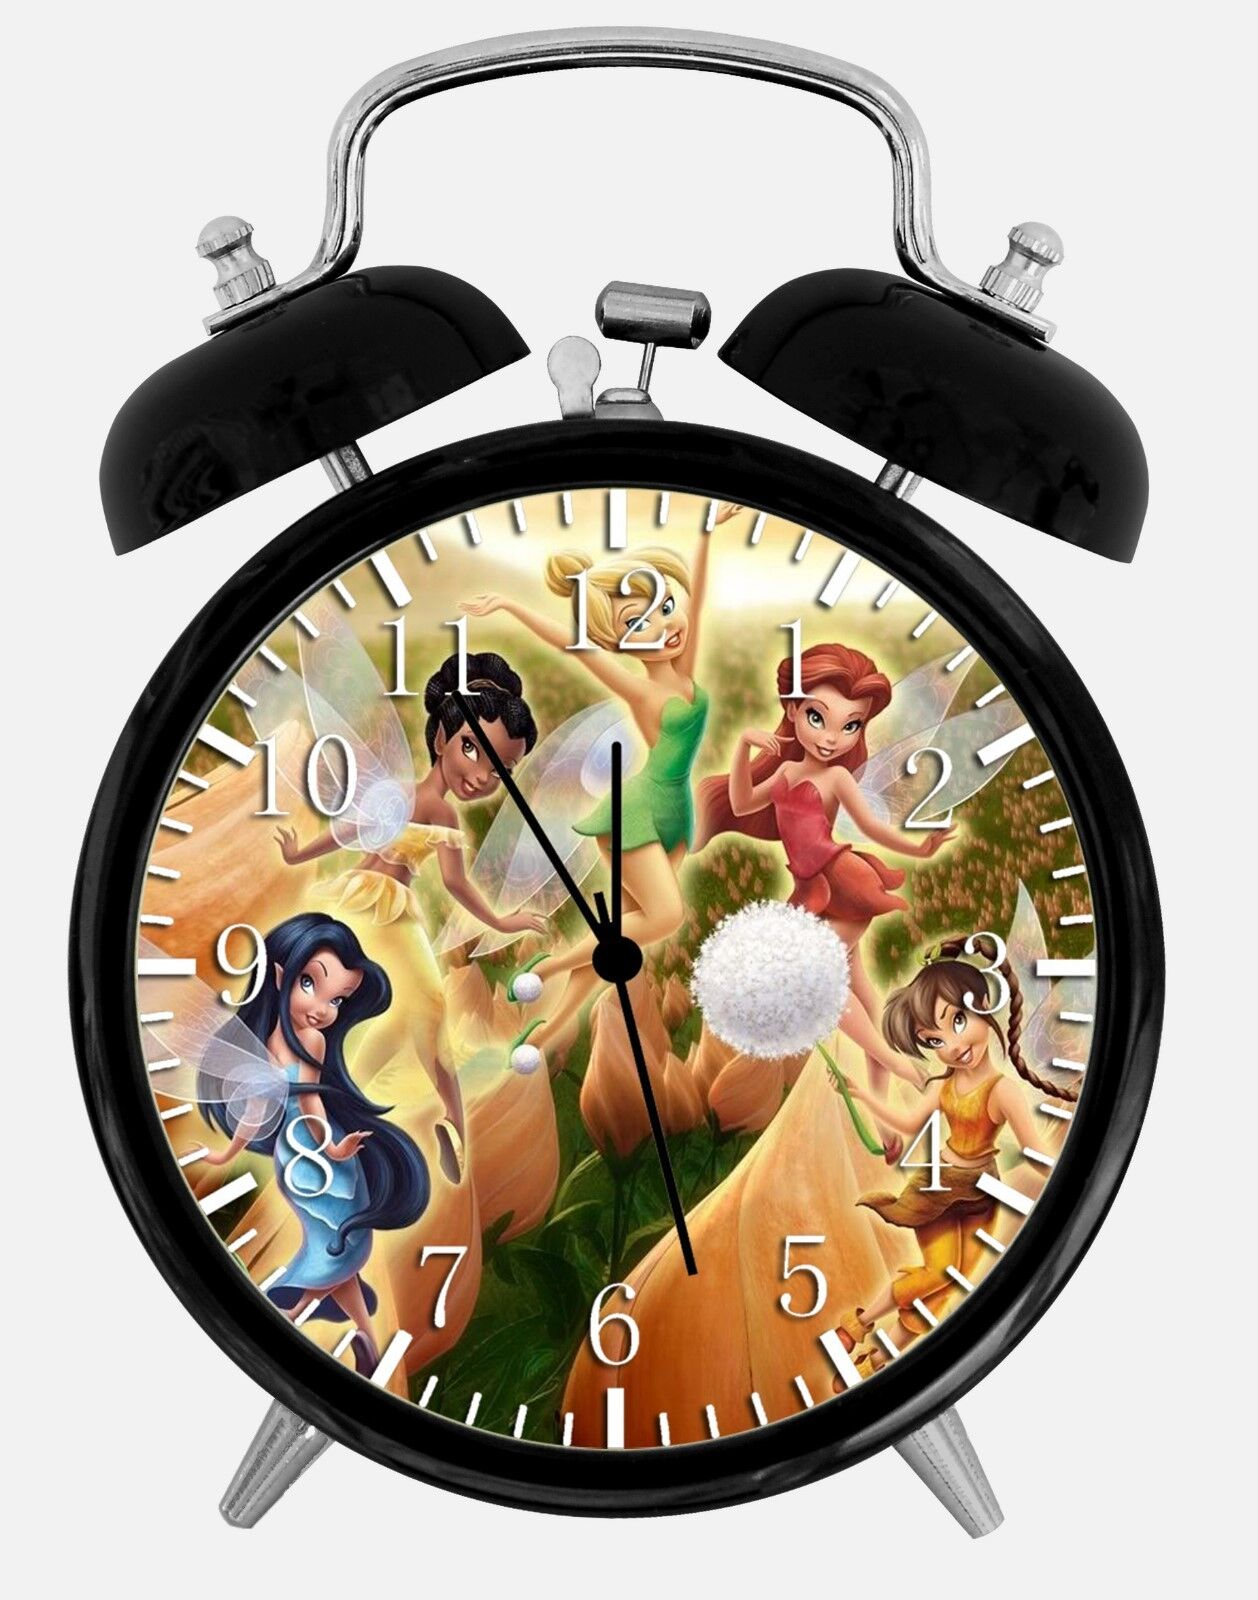 """Tinker Bell Alarm Desk Clock 3.75"""" Room Office Decor W02 Will Be a Nice Gift"""